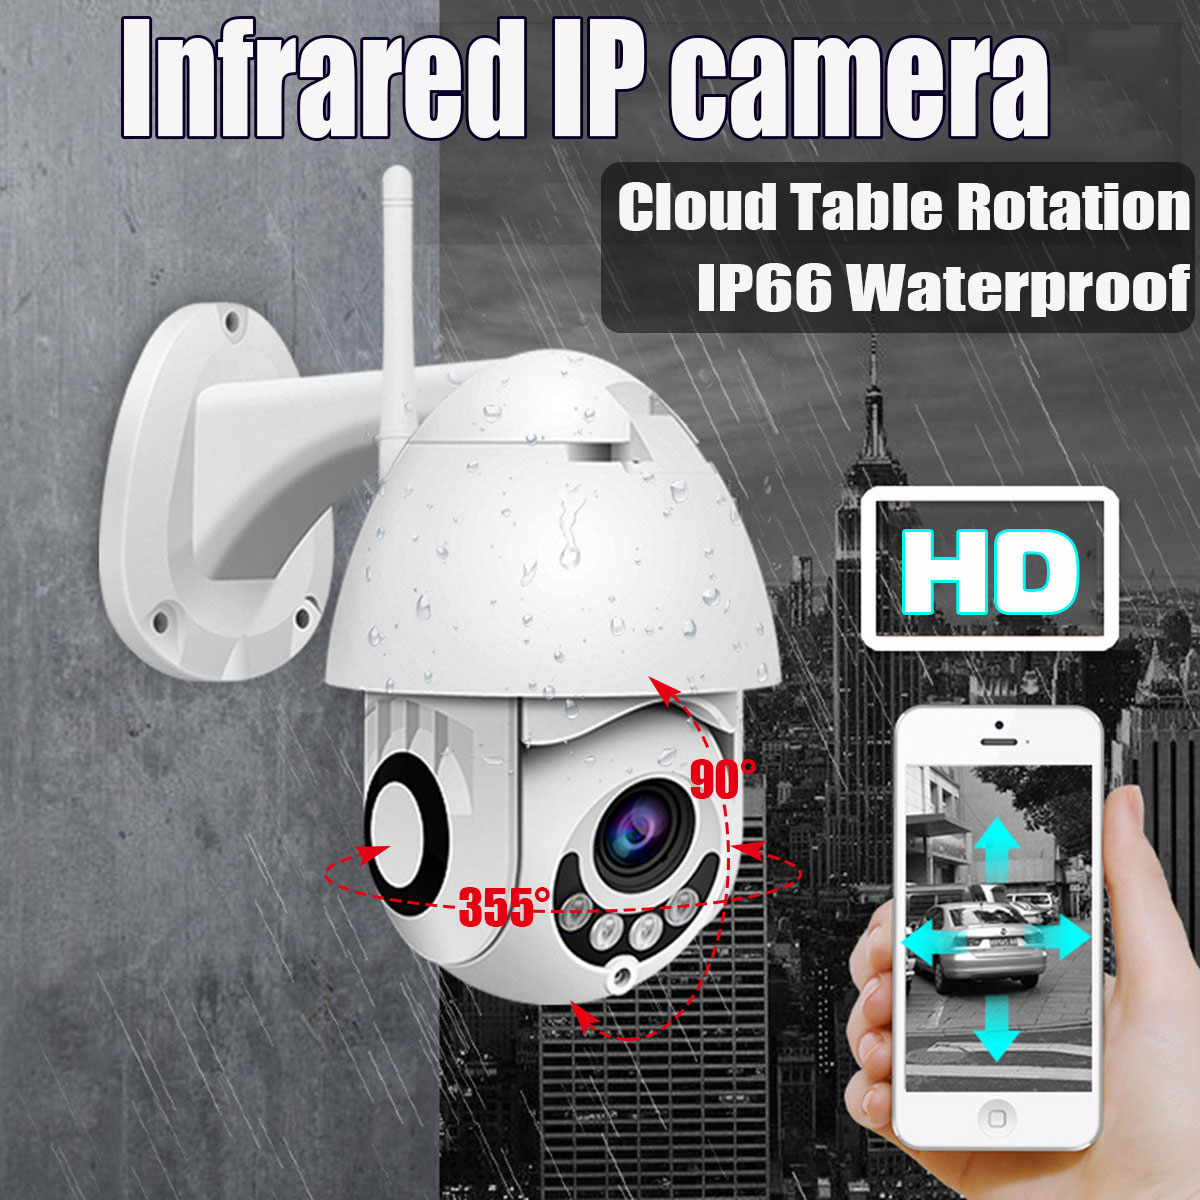 Wireless WIFI IP Camera 1080P HD Night Vision Two Way Audio IP66 Waterproof Outdoor Indoor 2MP Home Security Surveilance CameraWireless WIFI IP Camera 1080P HD Night Vision Two Way Audio IP66 Waterproof Outdoor Indoor 2MP Home Security Surveilance Camera